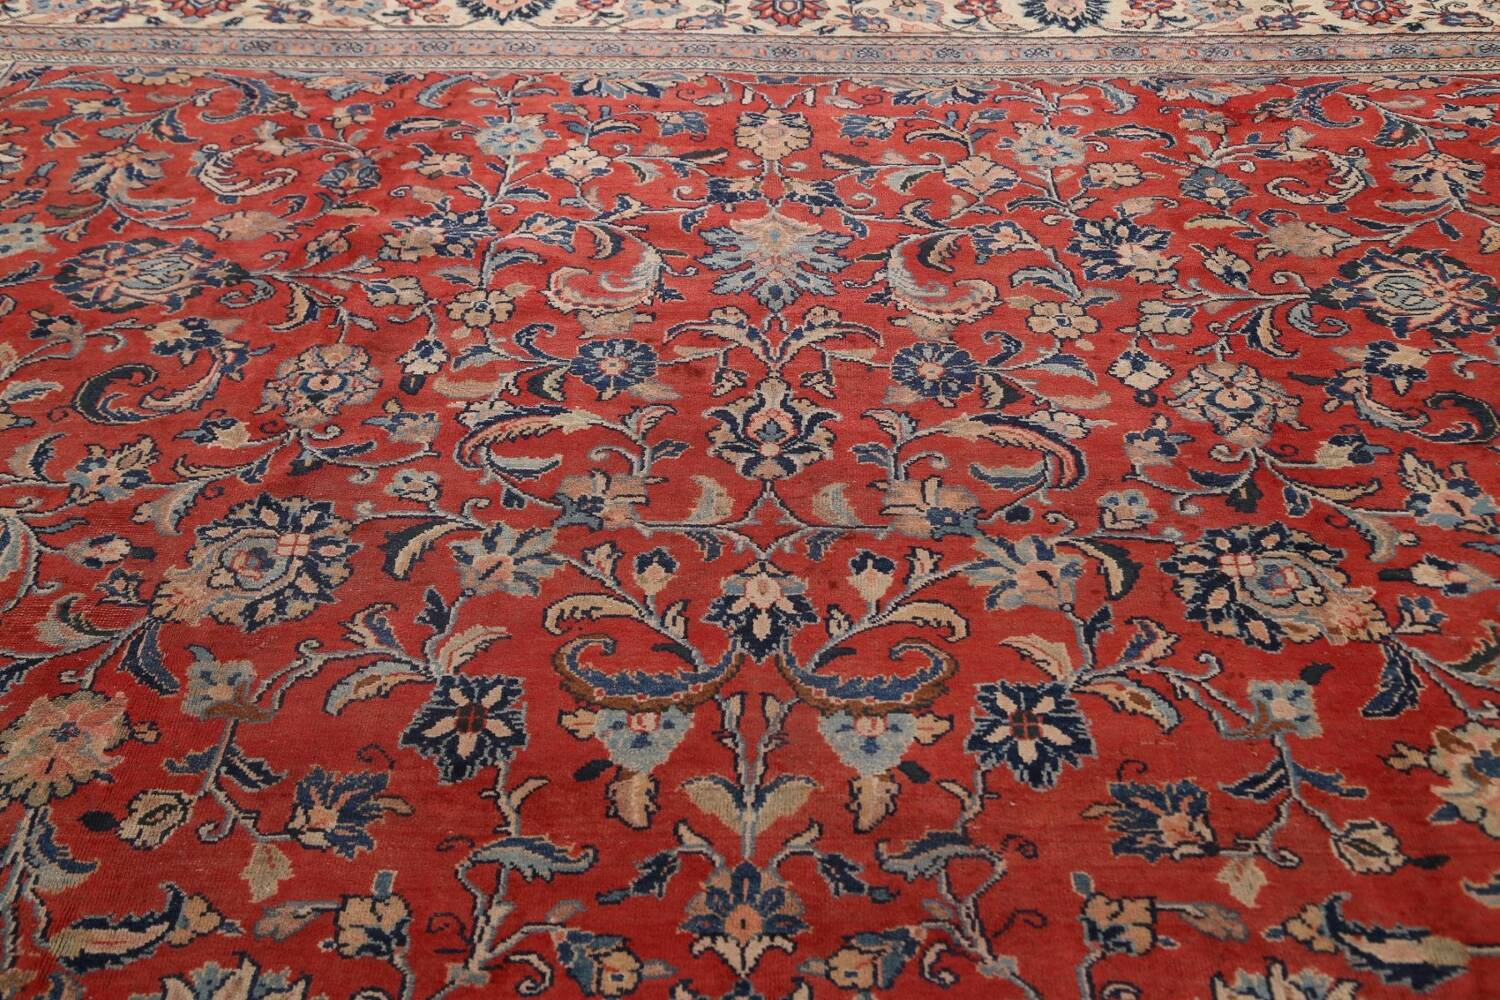 Antique Floral Mahal Persian Area Rug 10x14 image 12